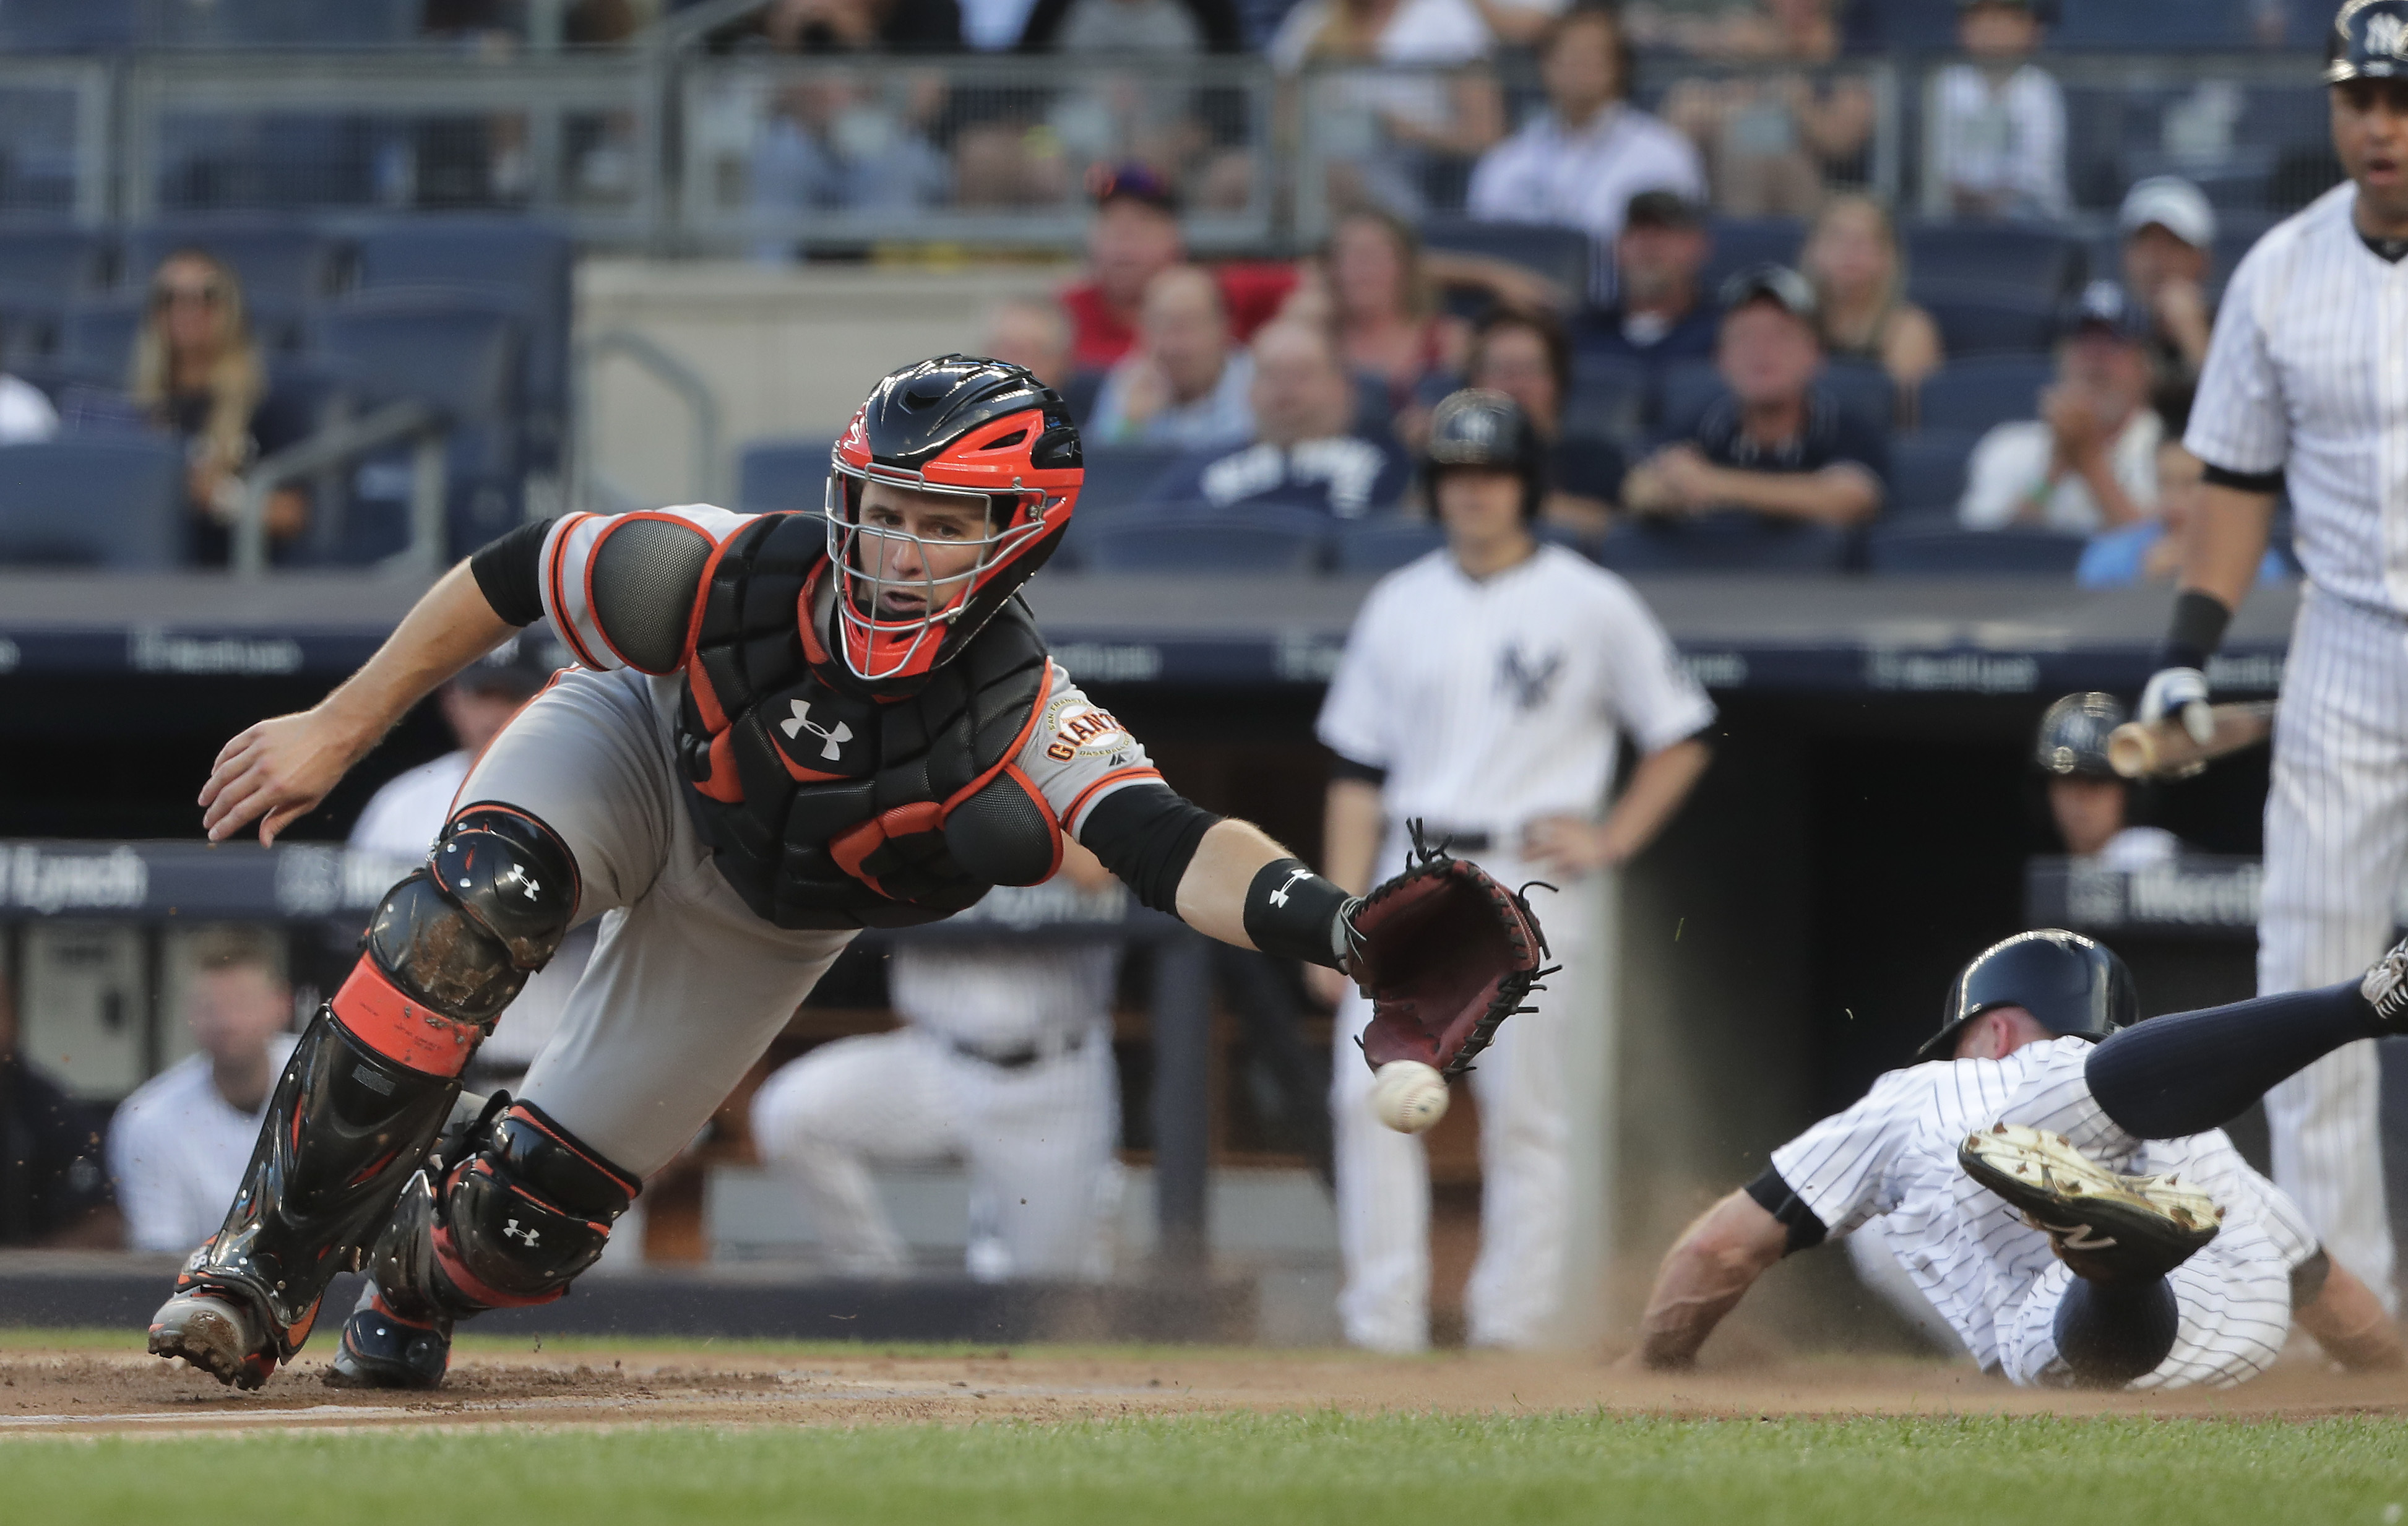 San Francisco Giants catcher Buster Posey can't reach the throw as New York Yankees' Brett Gardner, right, scores on a double by Starlin Castro during the first inning of a baseball game, Friday, July 22, 2016, in New York. (AP Photo/Julie Jacobson)